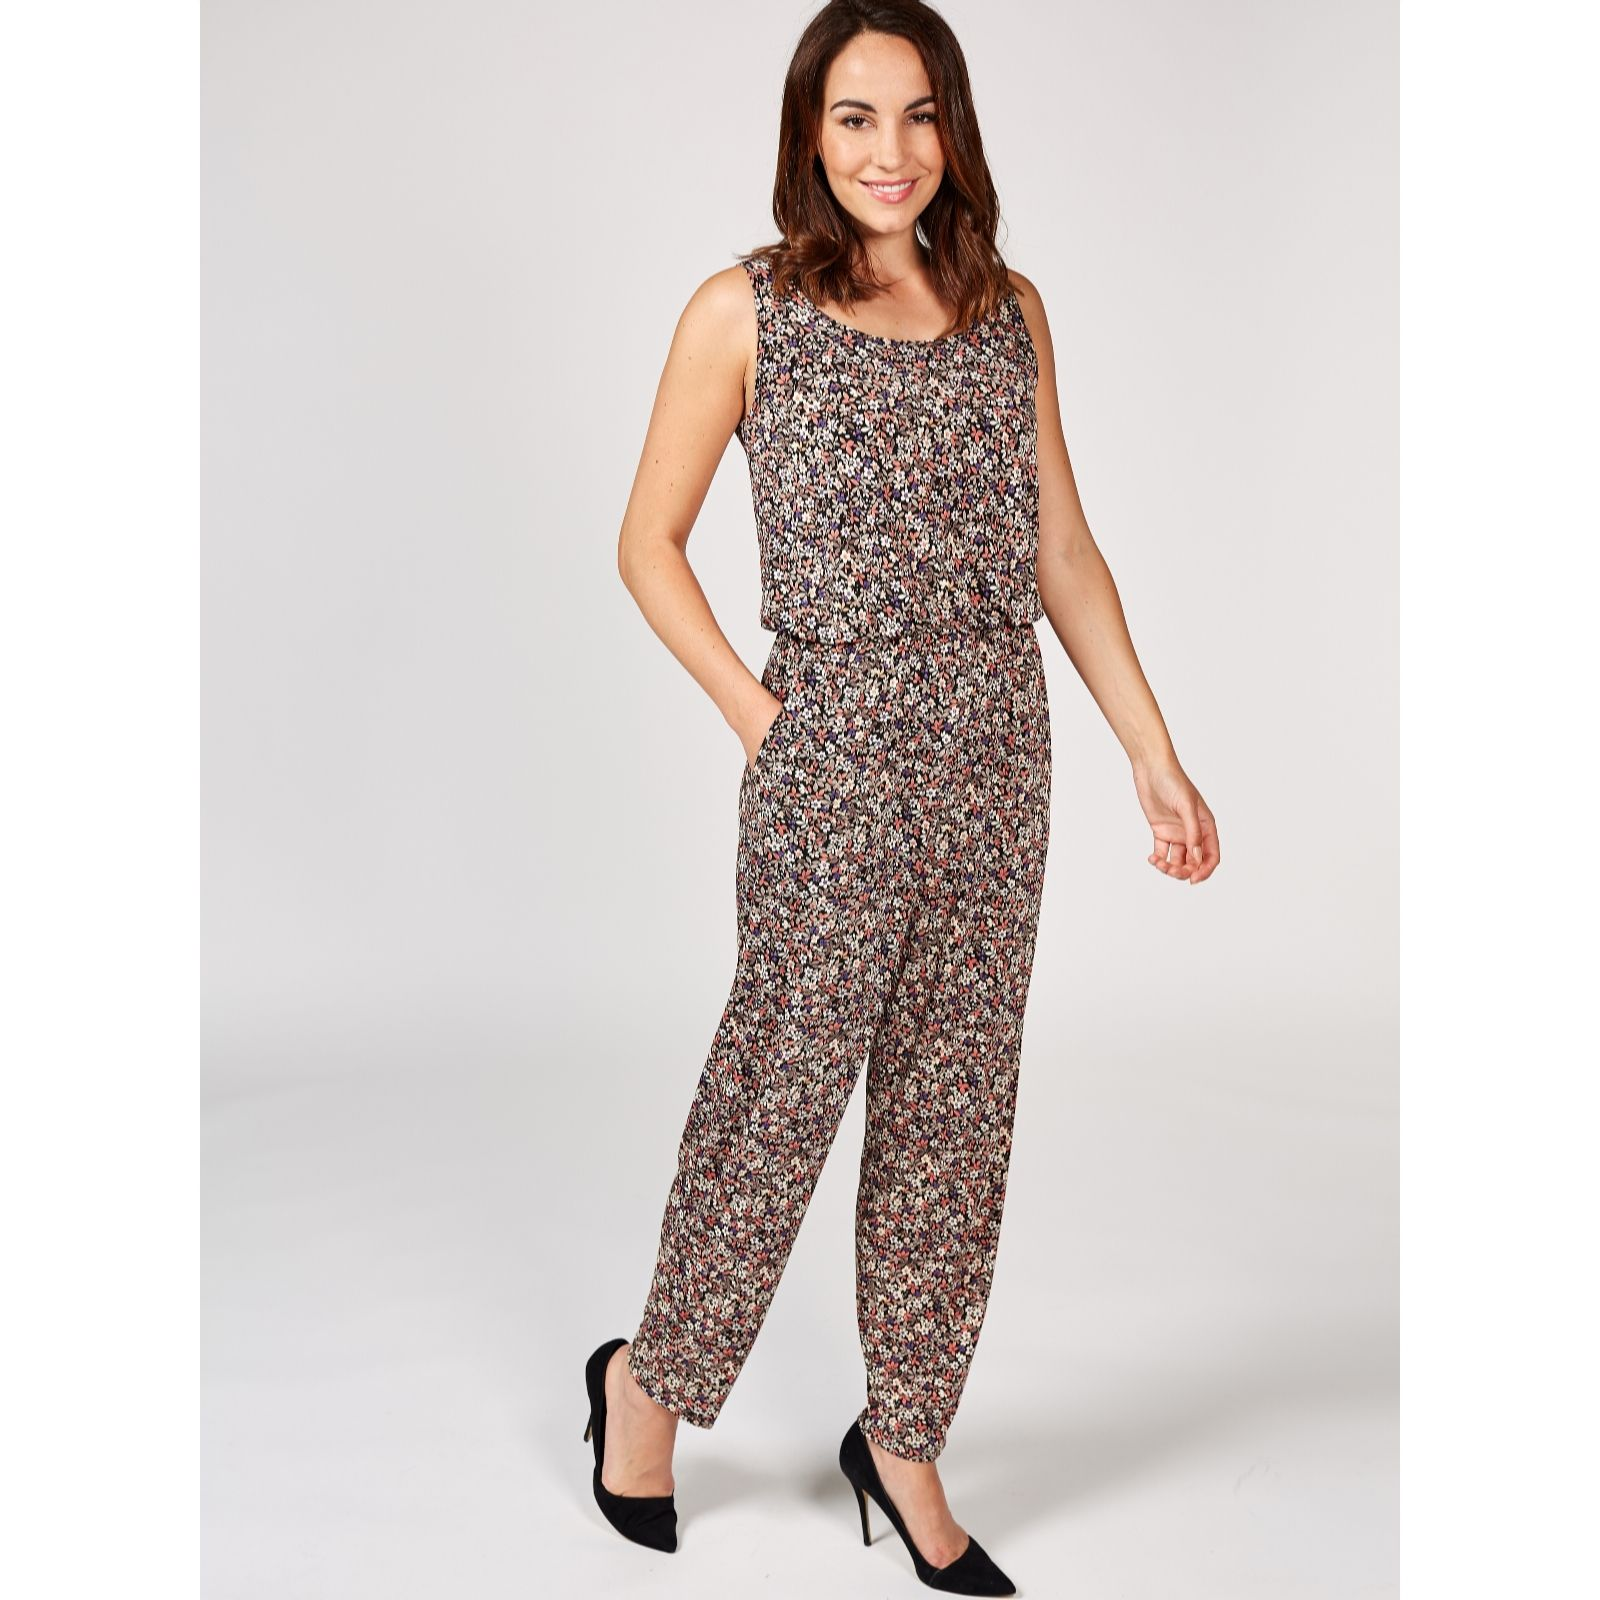 356a02c0797 Kim   Co Brazil Jersey Sweet Ditsy Sleeveless Jumpsuit - QVC UK